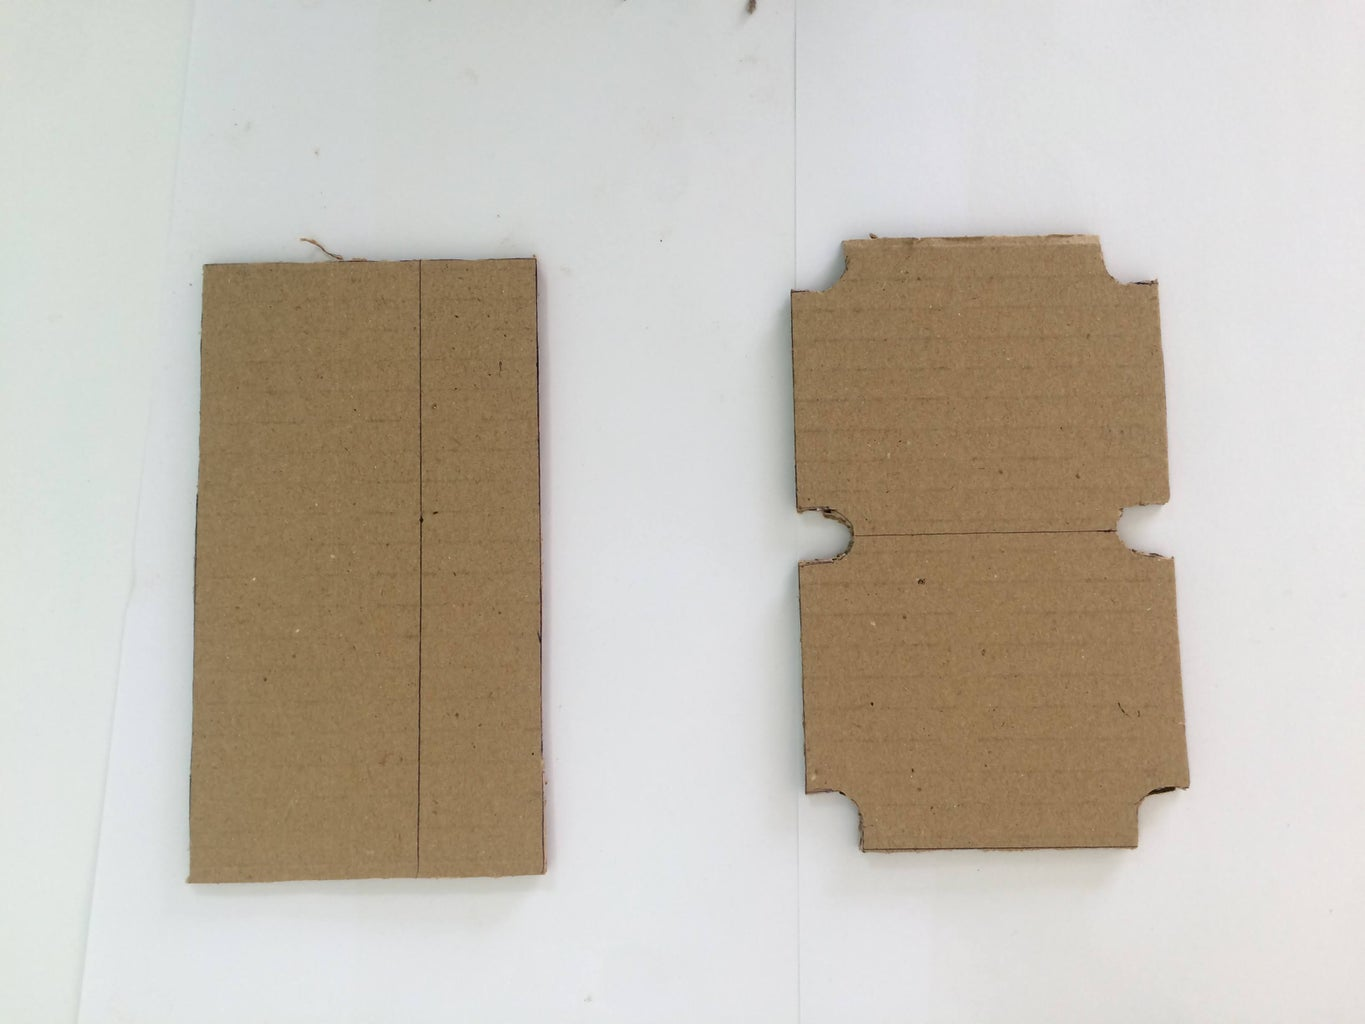 Mini Pool/Billiards: Cutting Out the Cardboard Pieces for the Structure